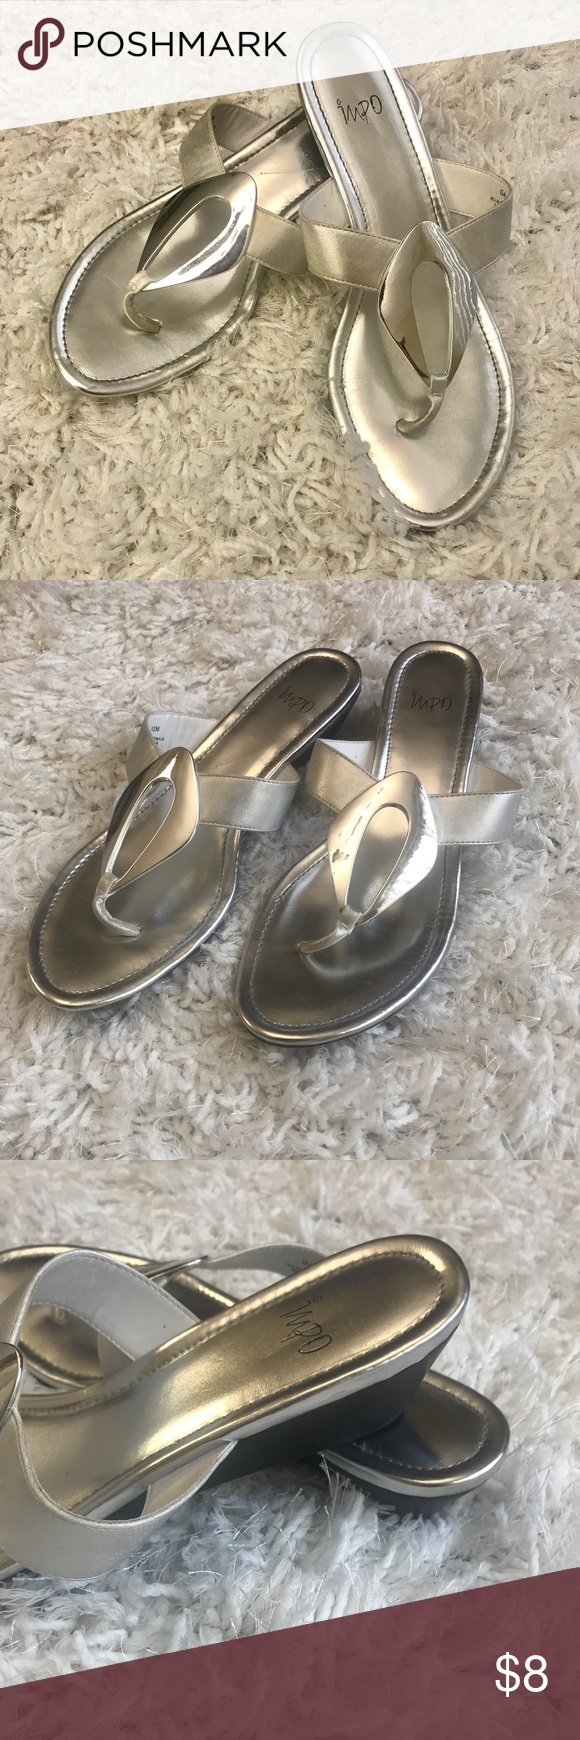 24e51d19d Impo Brand Sandal Gray and silver sandal with a 2 in wedged heel. Scratch  in the foot of the heel as pictured. Impo Shoes Sandals